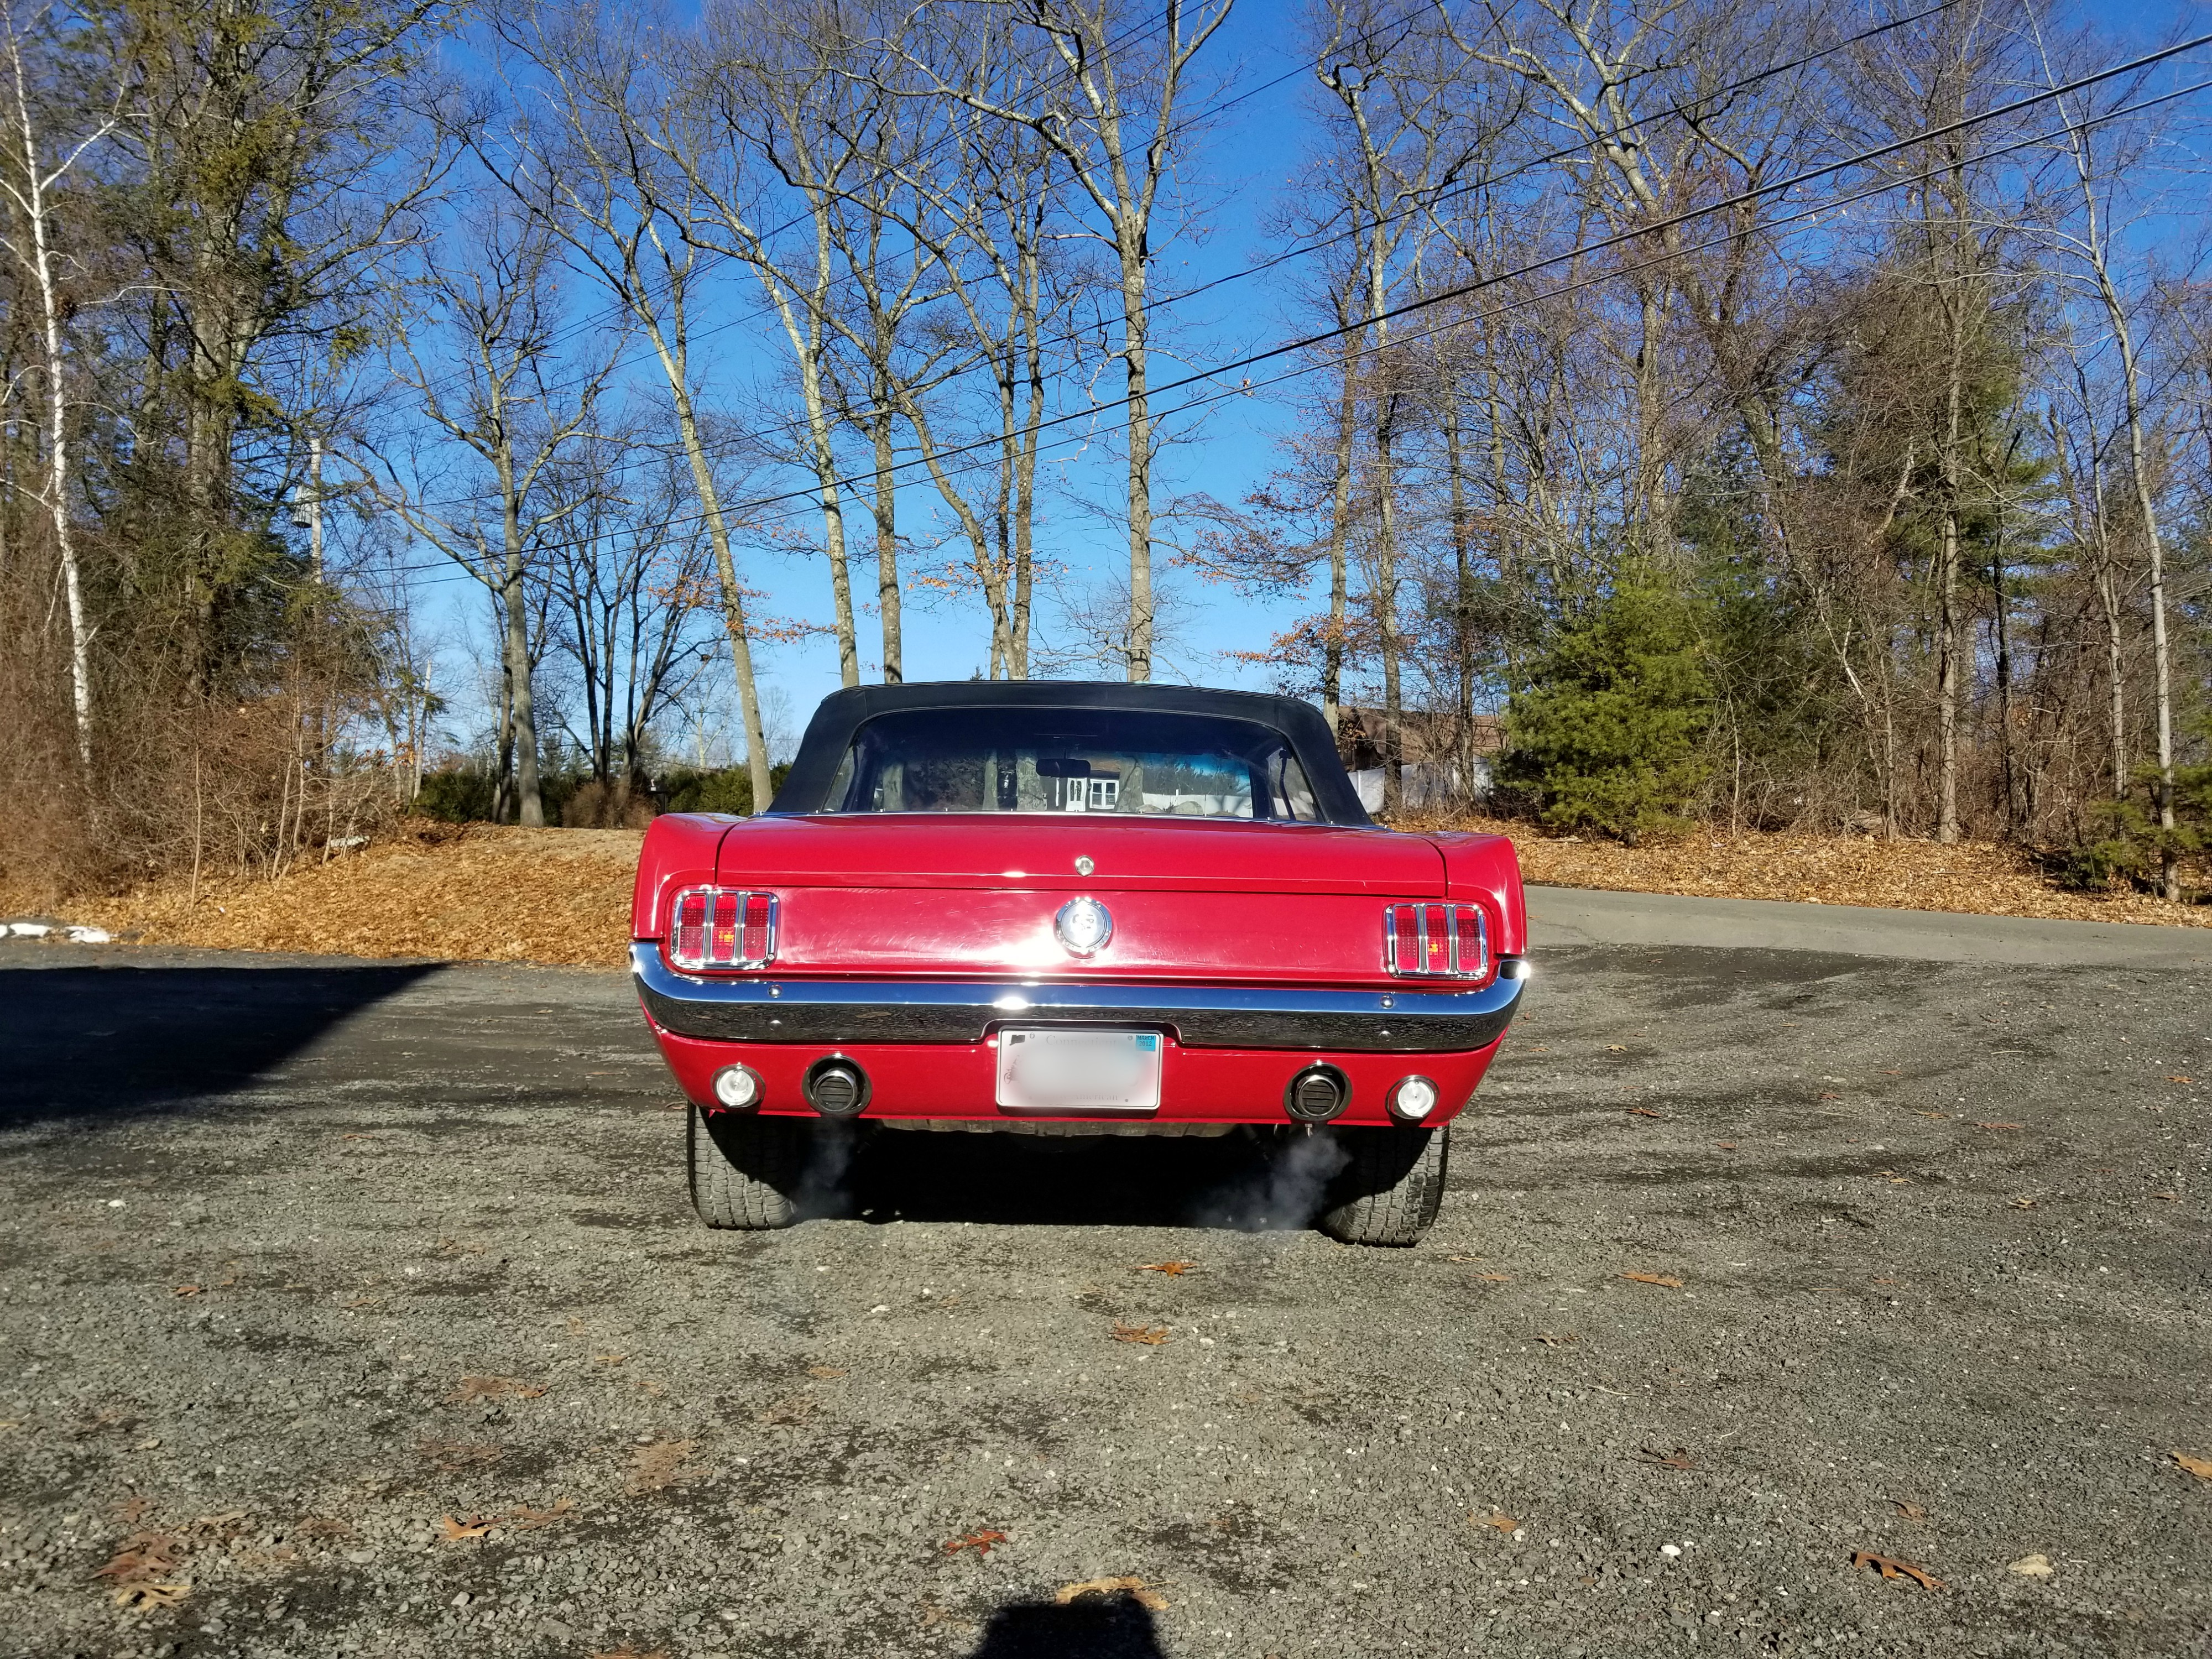 1966 Mustang Rear View